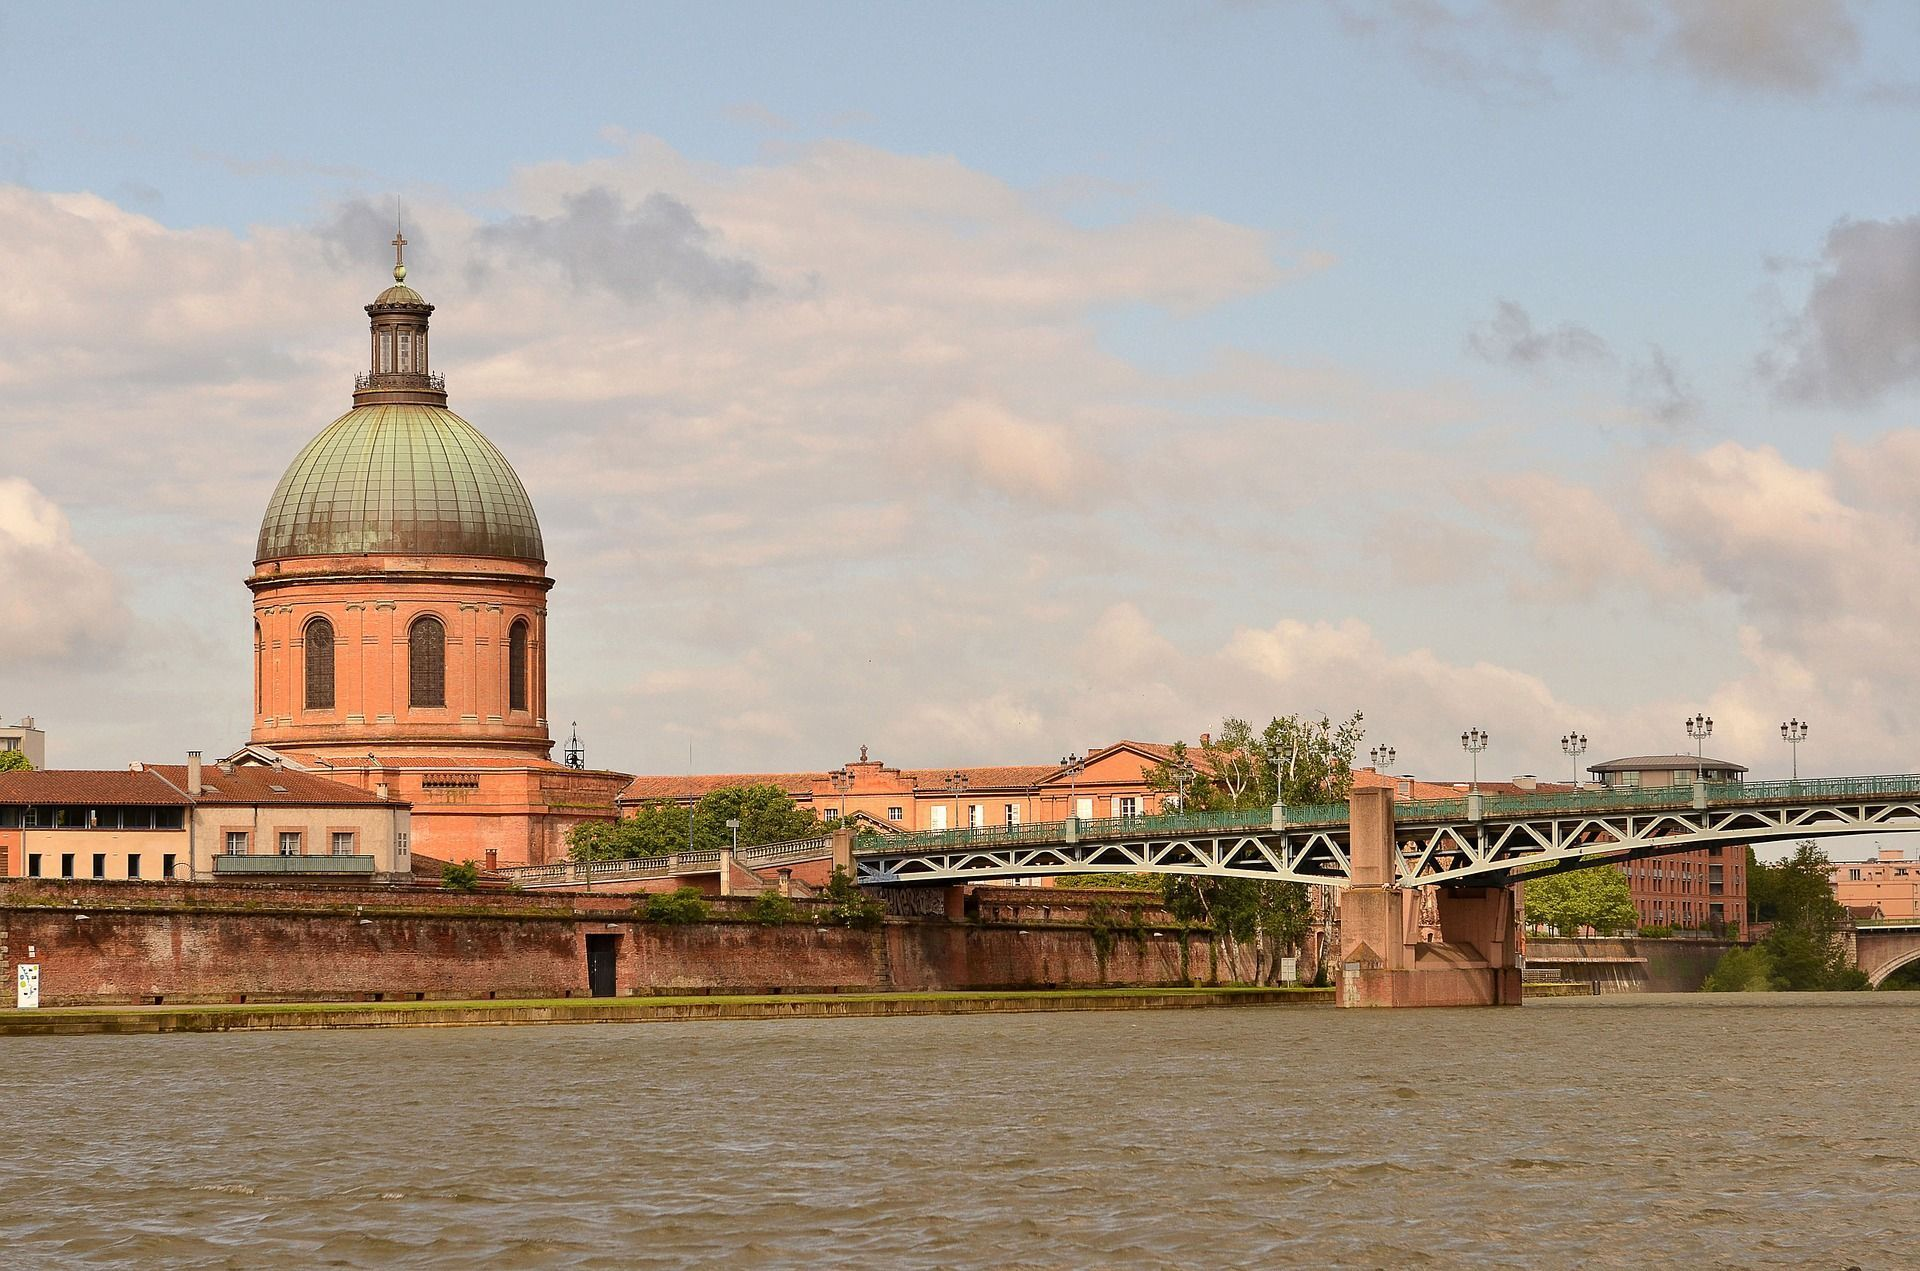 Toulouse, Francia - Catedral